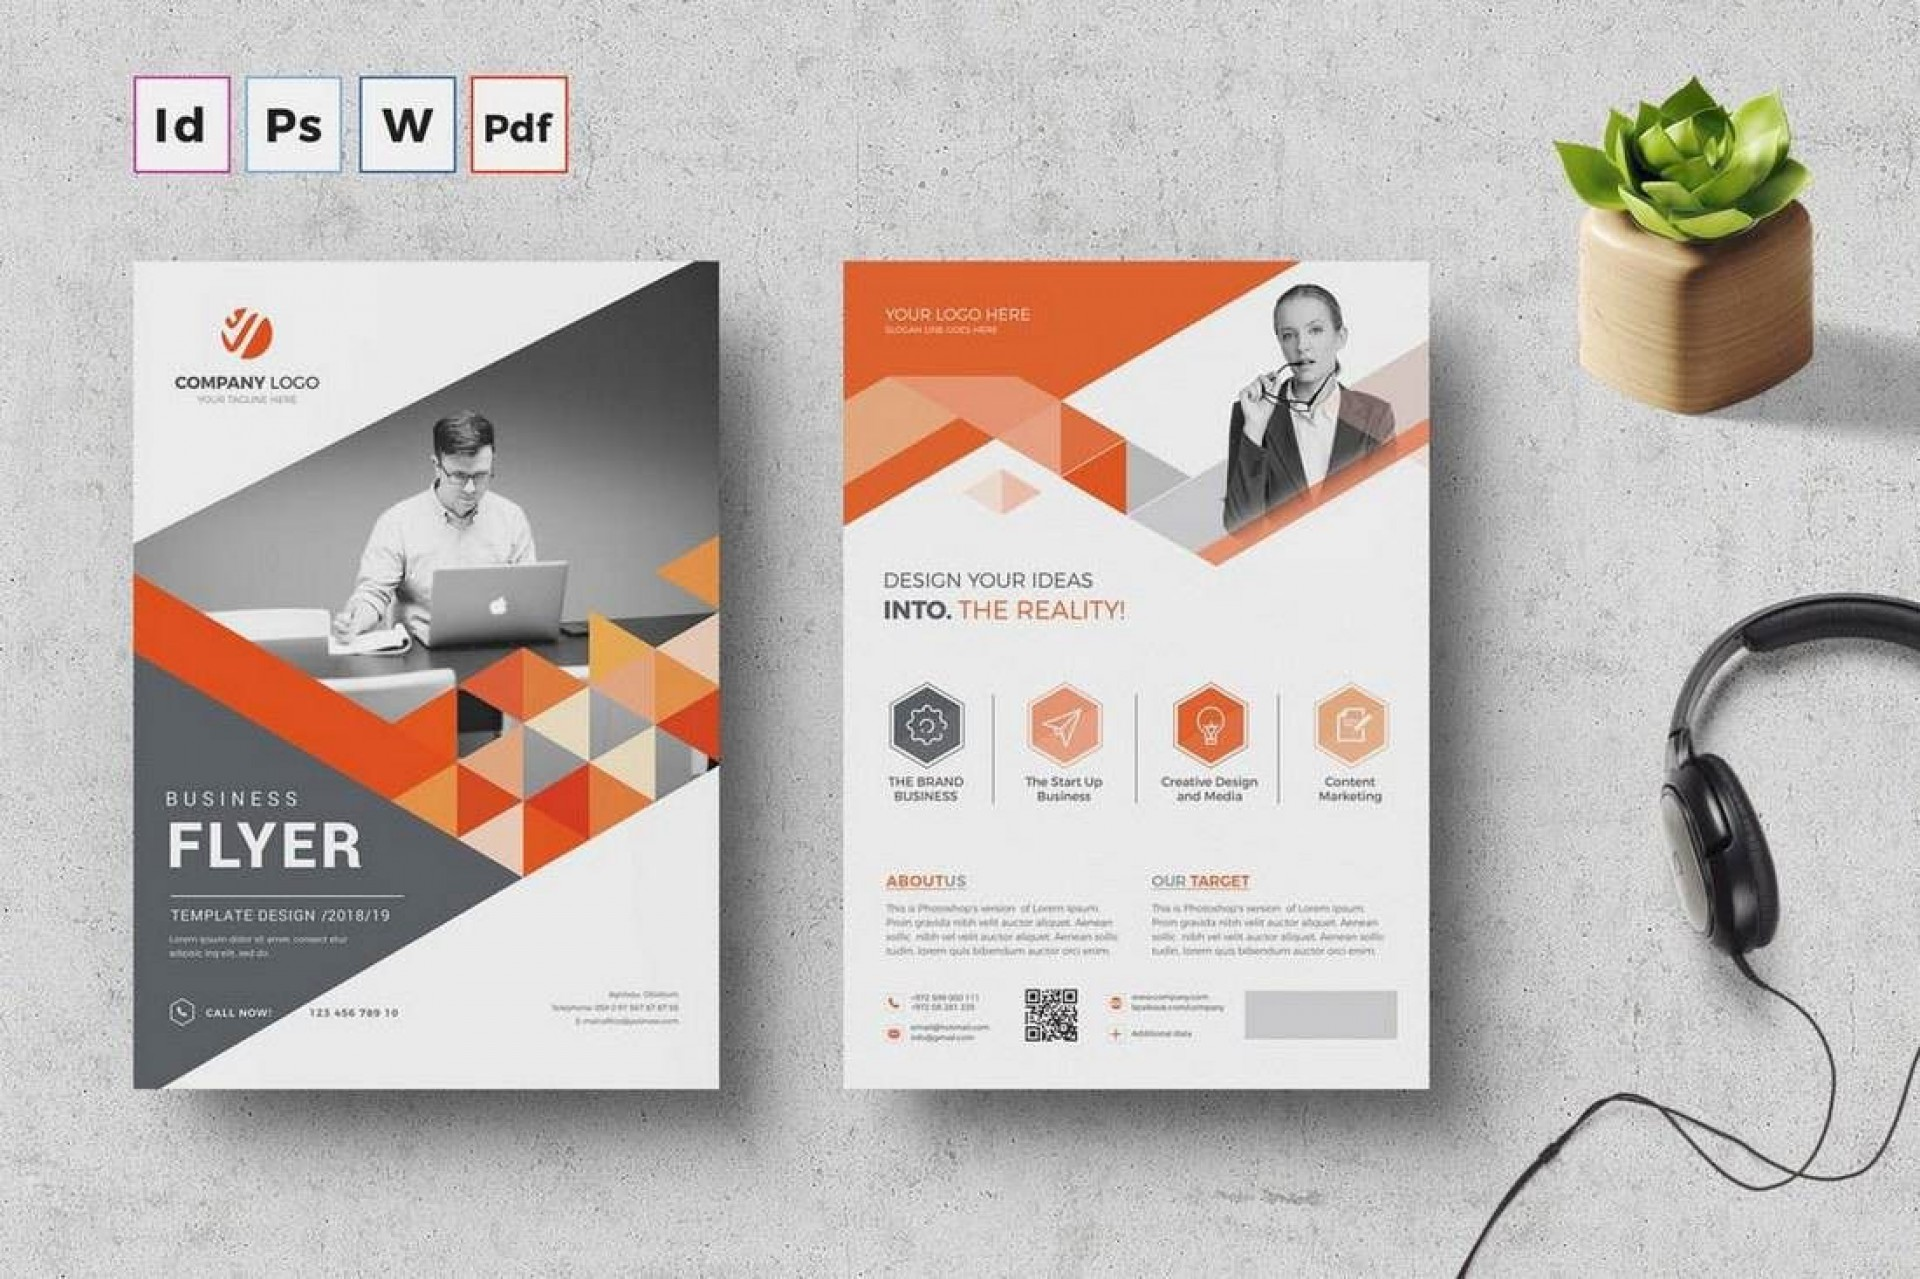 005 Shocking In Design Flyer Template Example  Templates Indesign Free For Mac Event1920